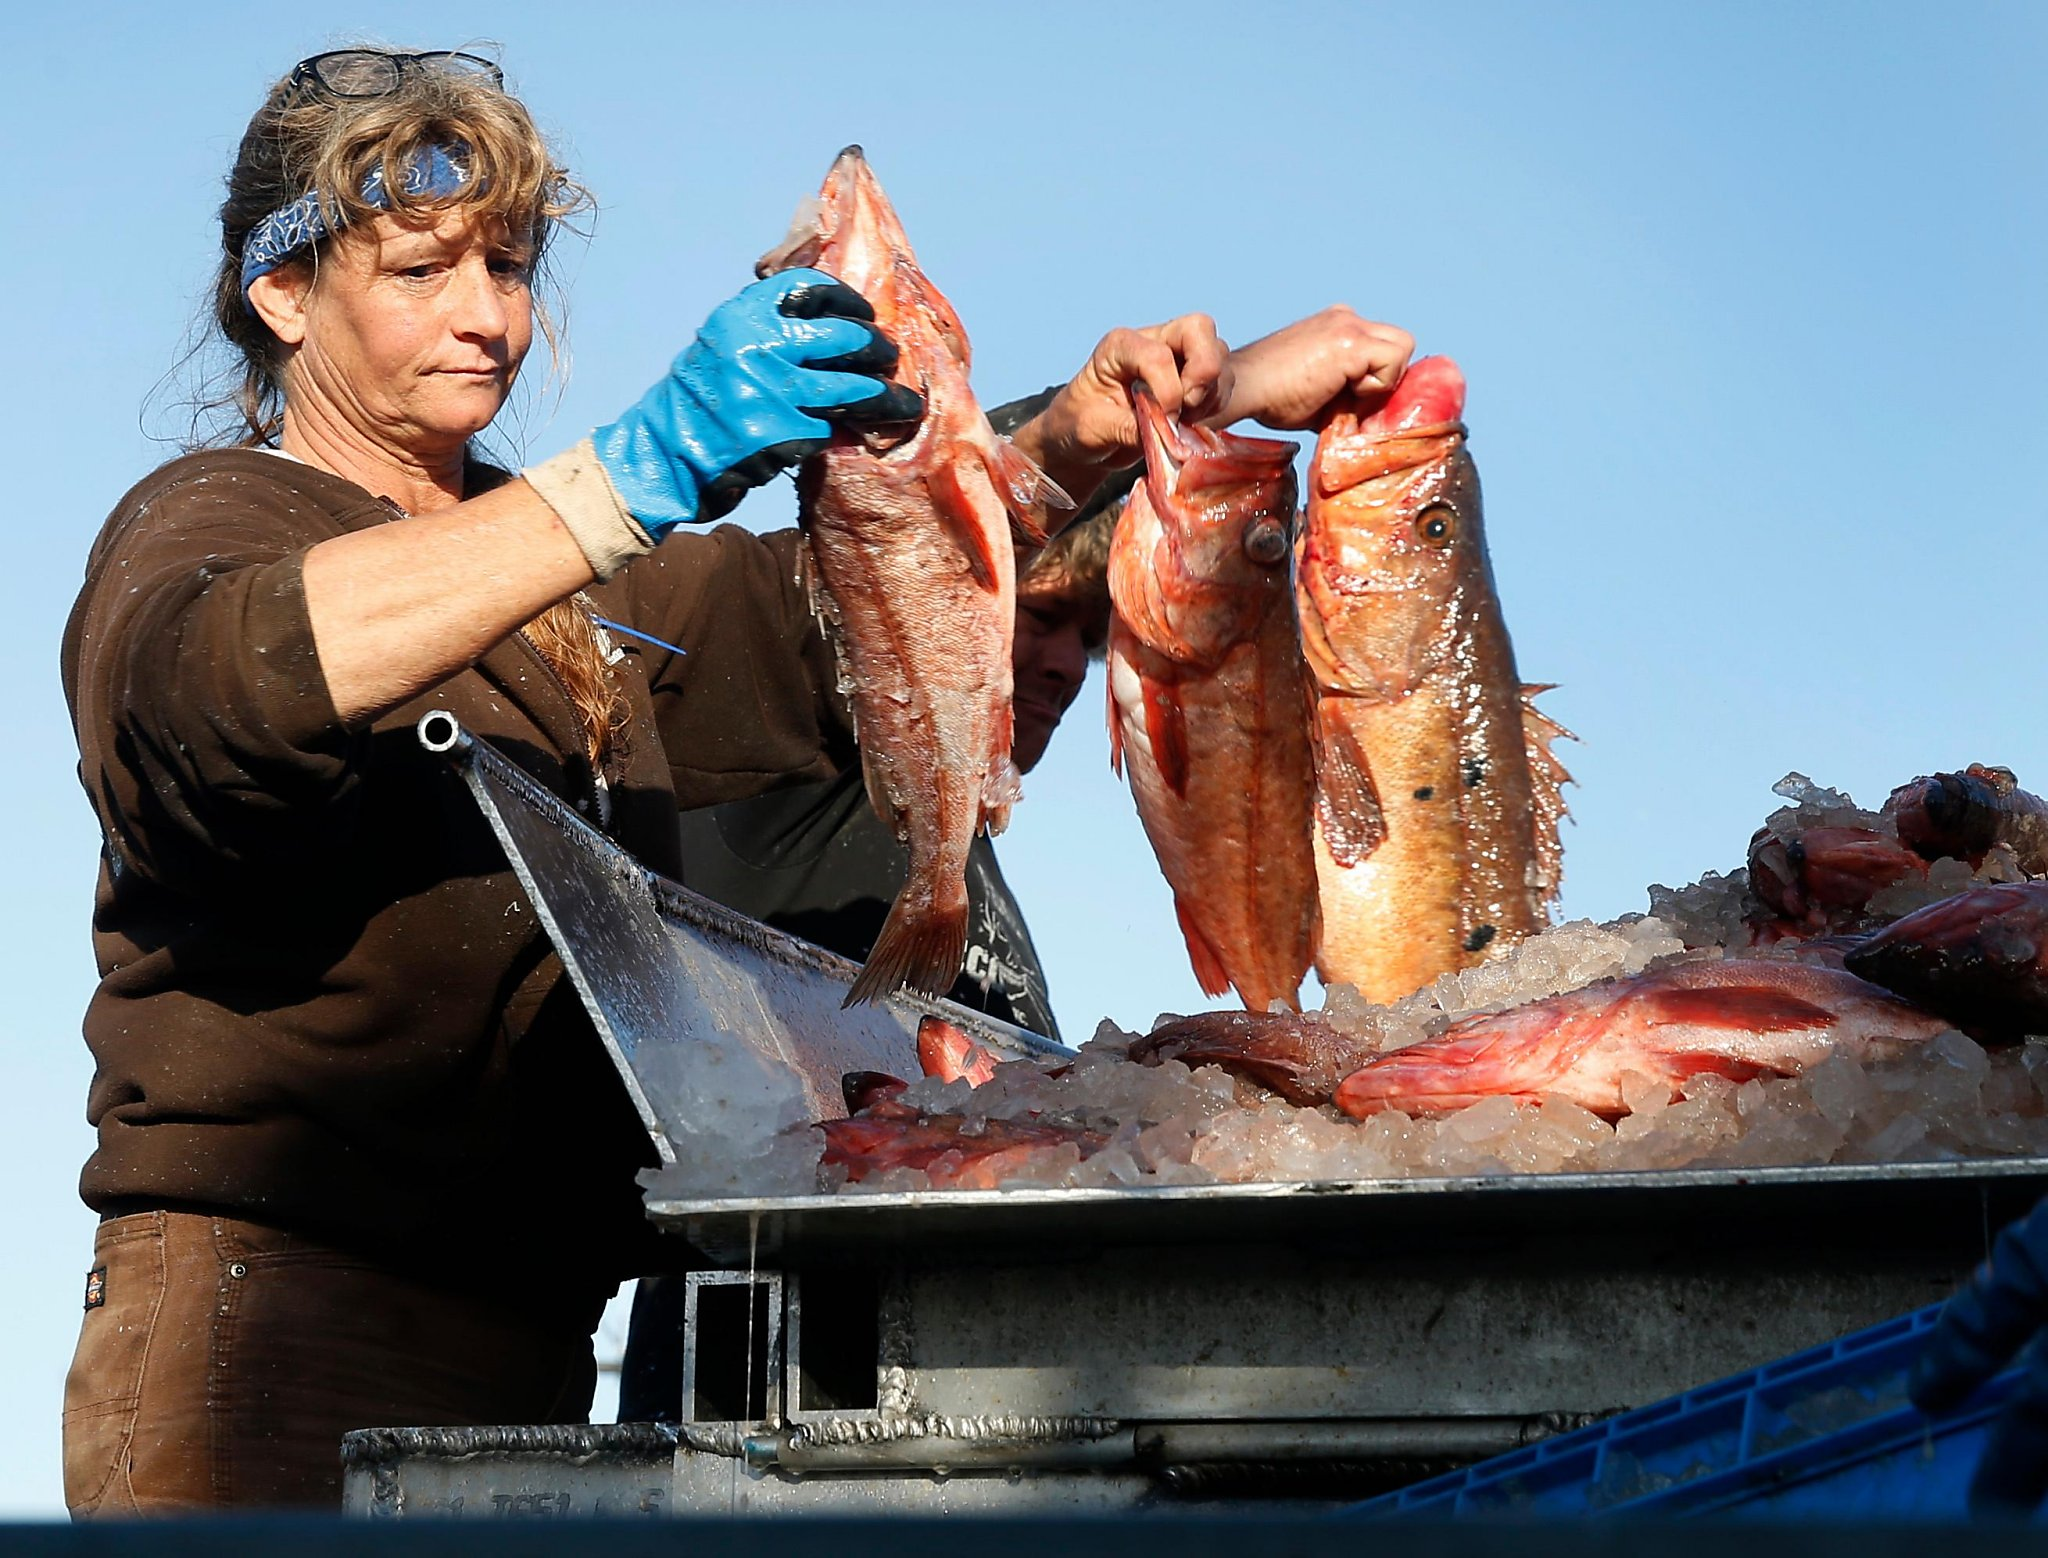 Direct fish retail sales get the green light at Fisherman's Wharf